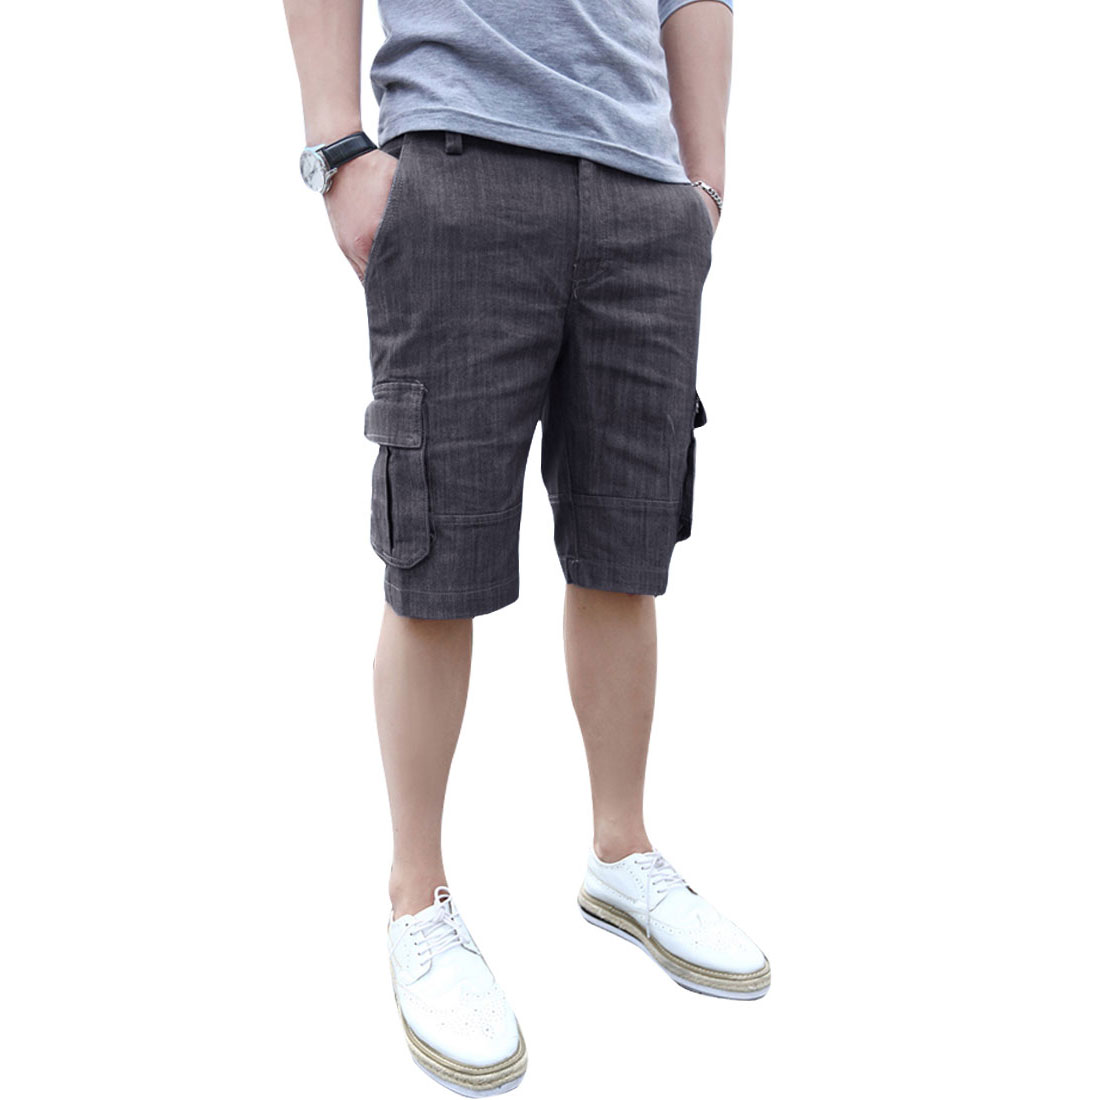 Men Zipper Pockets Buttoned Zipper Fly Denim Short Trousers Gray W32